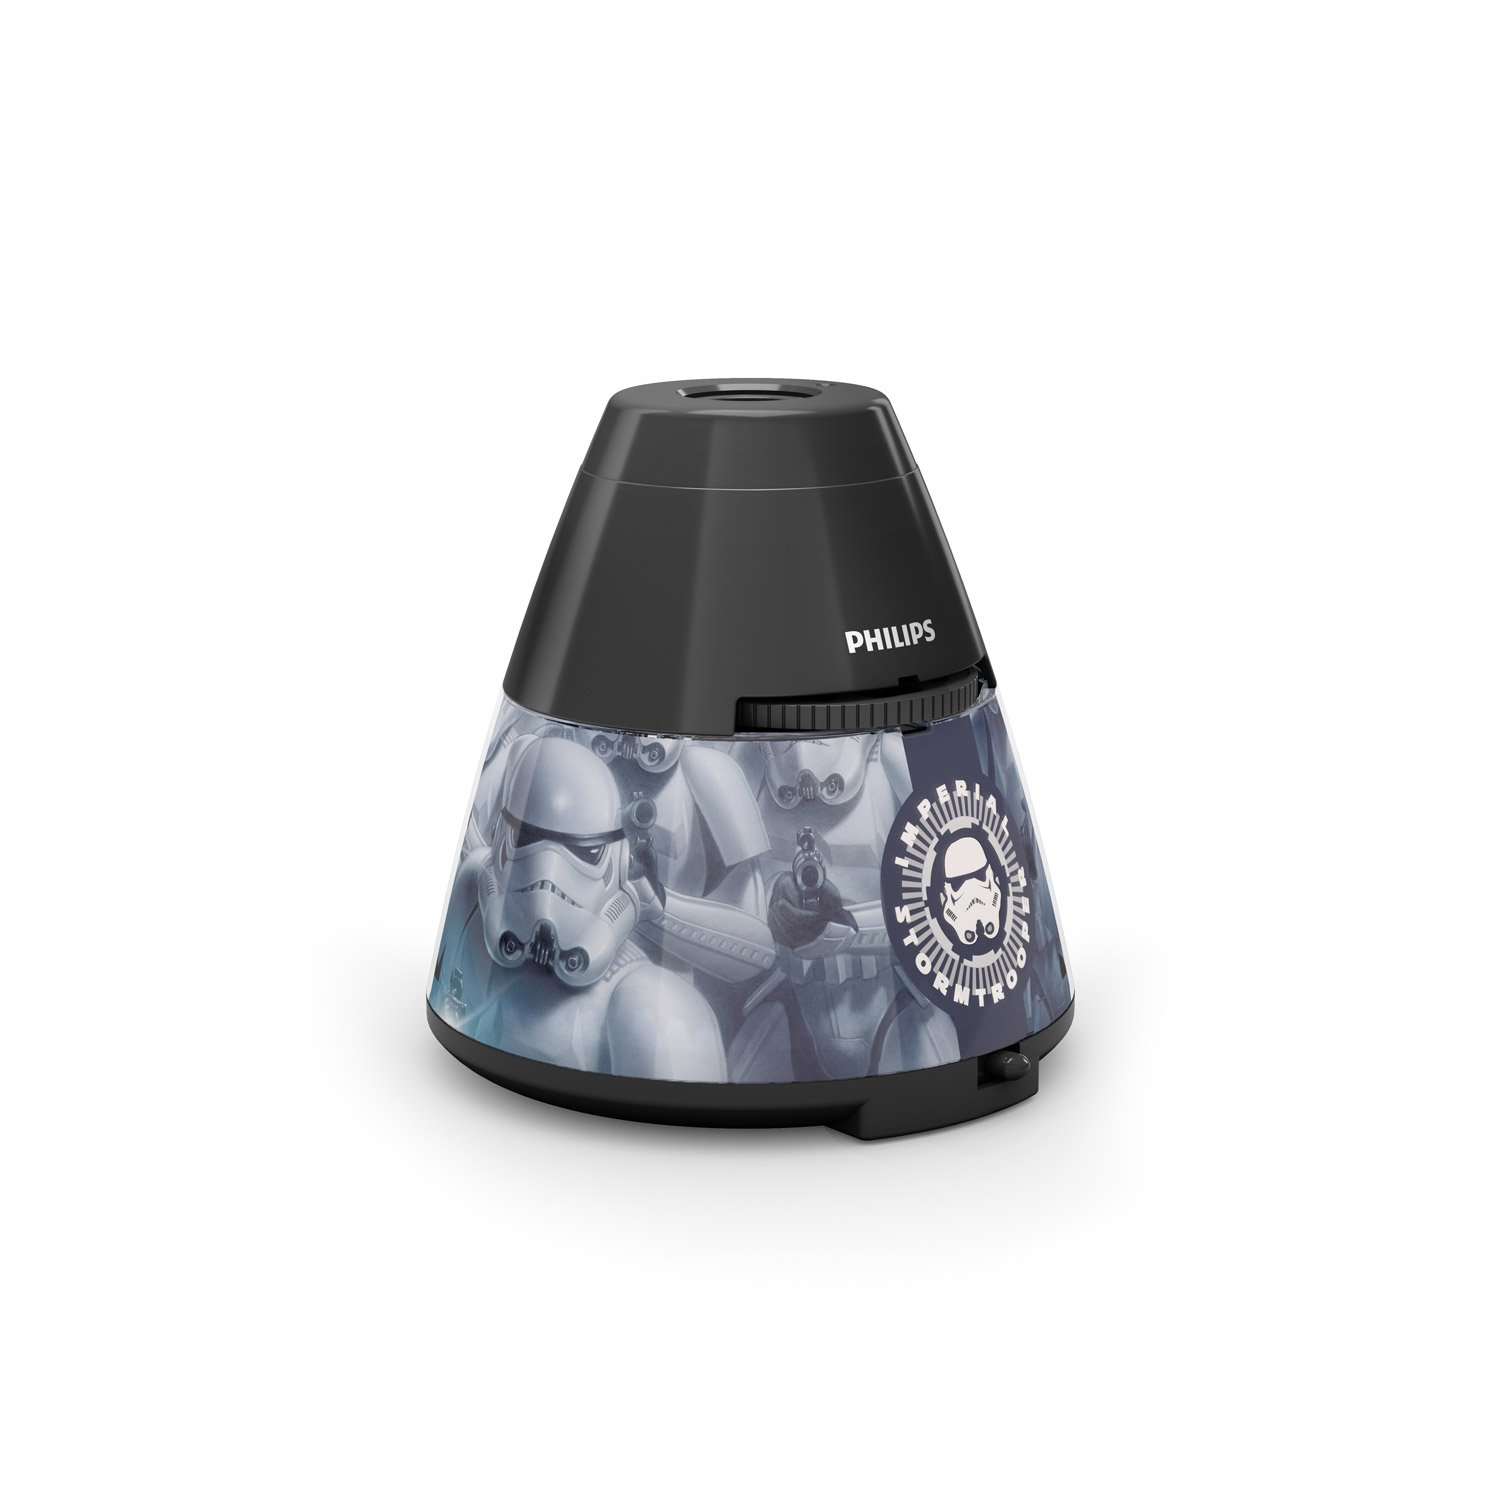 veilleuse led int gr e star wars philips 1x0 1 w w leroy merlin. Black Bedroom Furniture Sets. Home Design Ideas